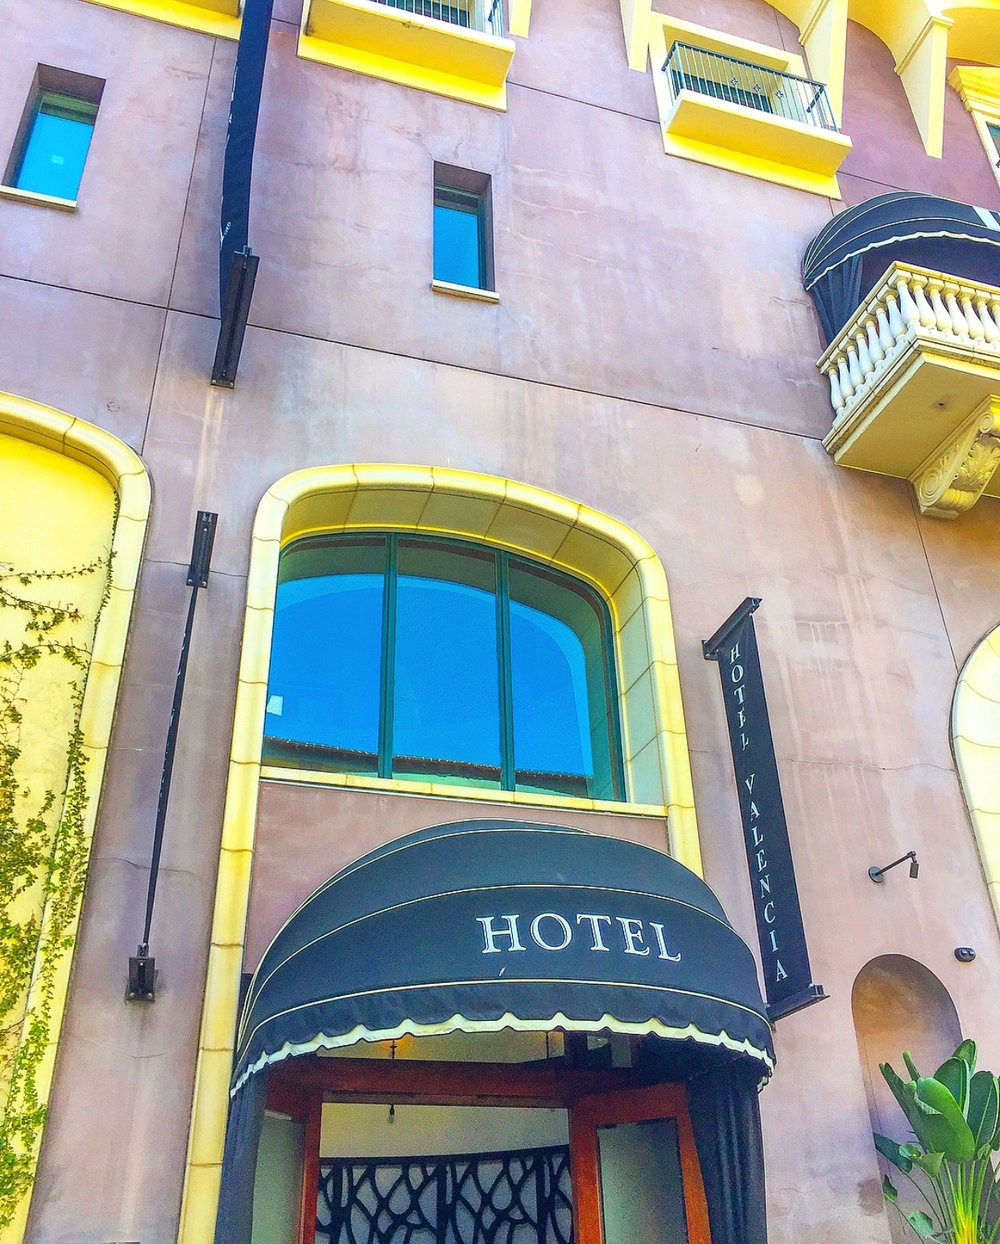 Hotel Valencia Santana Row in San Jose, California